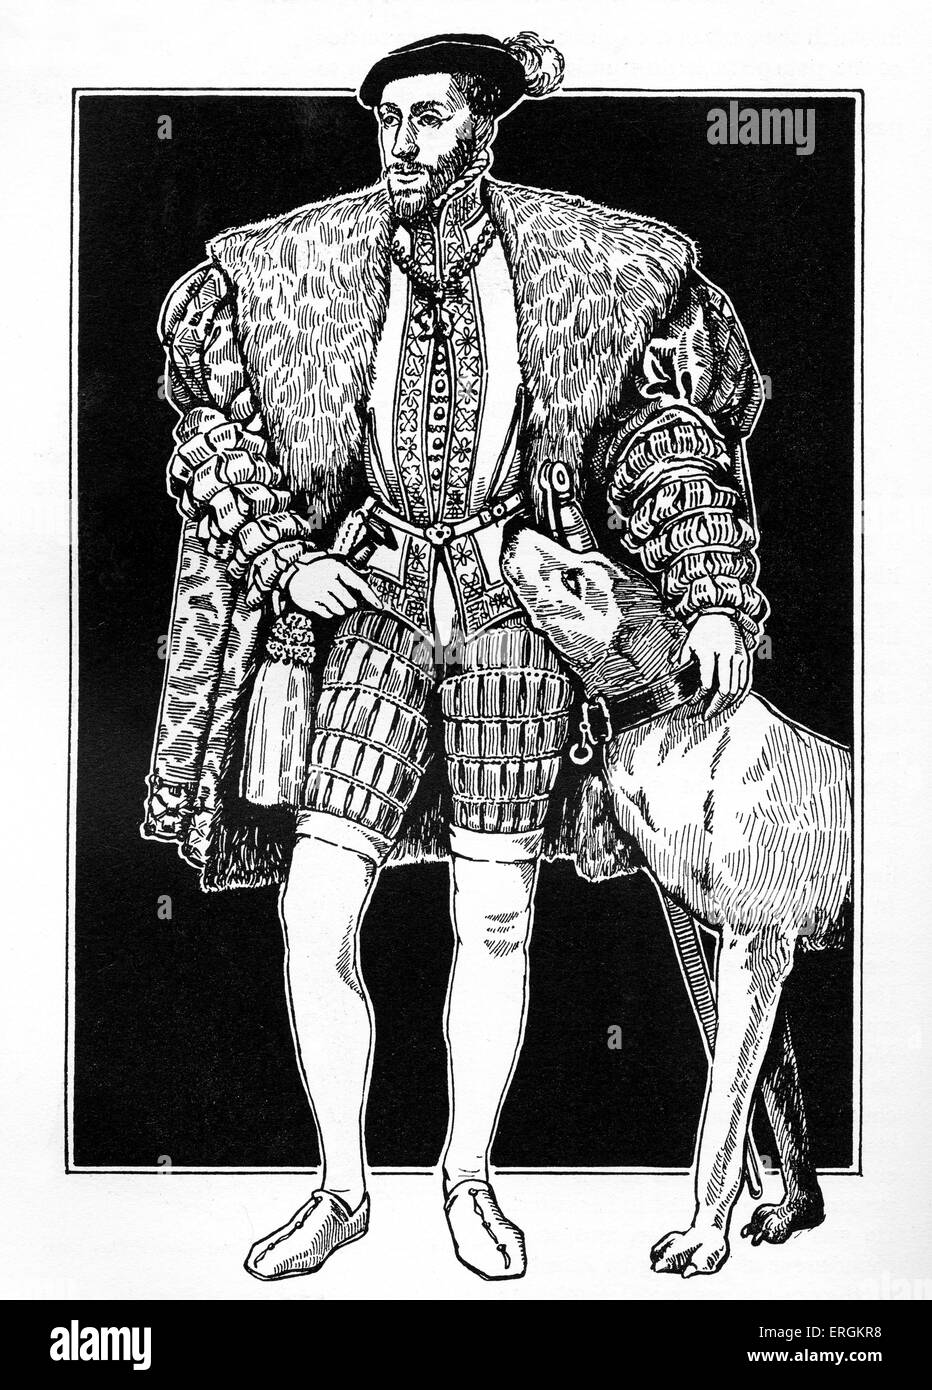 Emperor Charles V (1500 - 1558) with hunting dog. Ruler of the Holy Roman Empire from 1519 and of the Spanish Empire - Stock Image